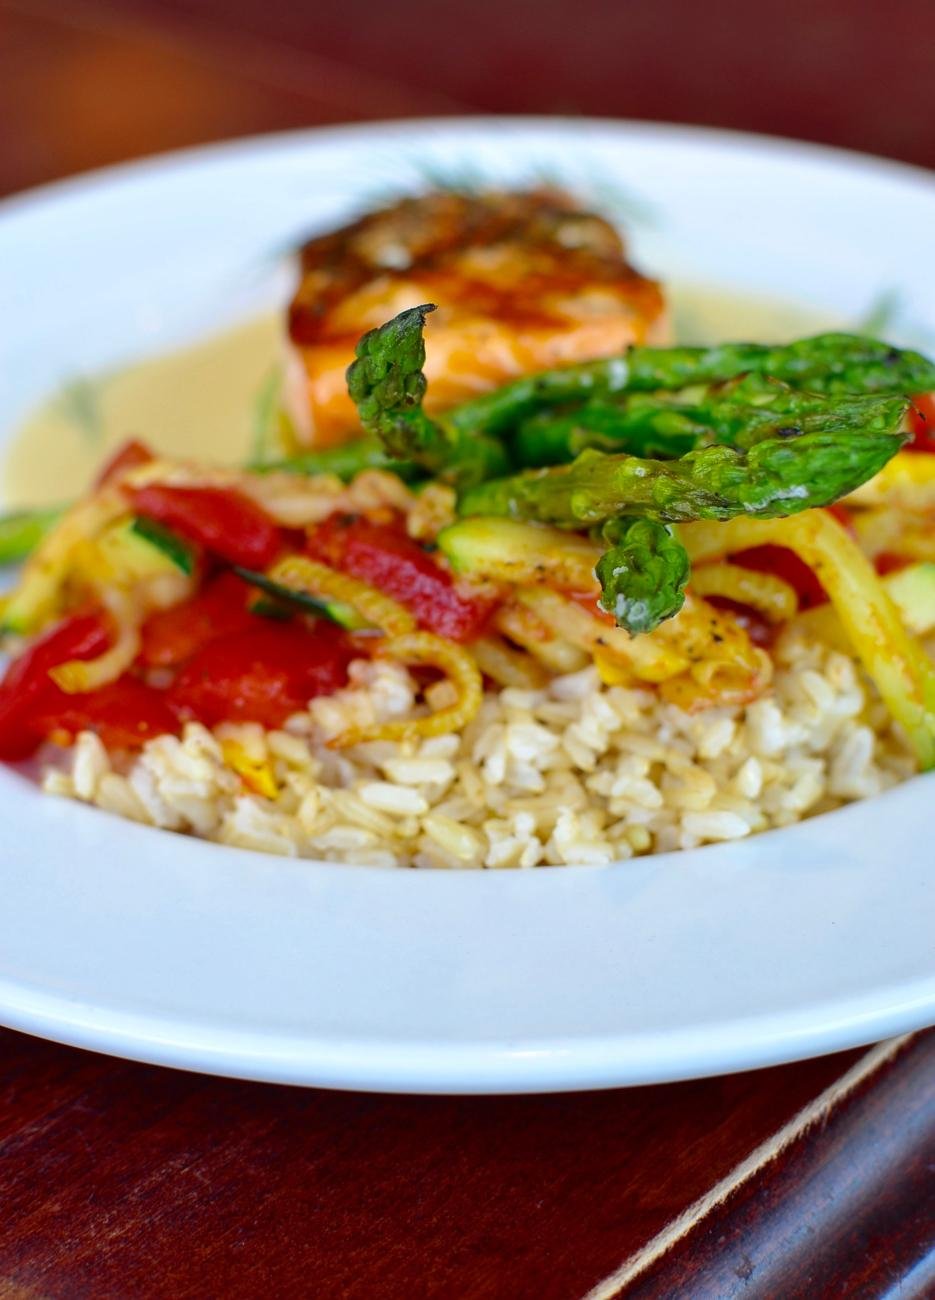 Grilled Salmon Filet: sautéed zucchini, fennel, tomato, brown rice, grilled asparagus, dill beurre blanc / Image: Leah Zipperstein, Cincinnati Refined // Published: 9.4.17